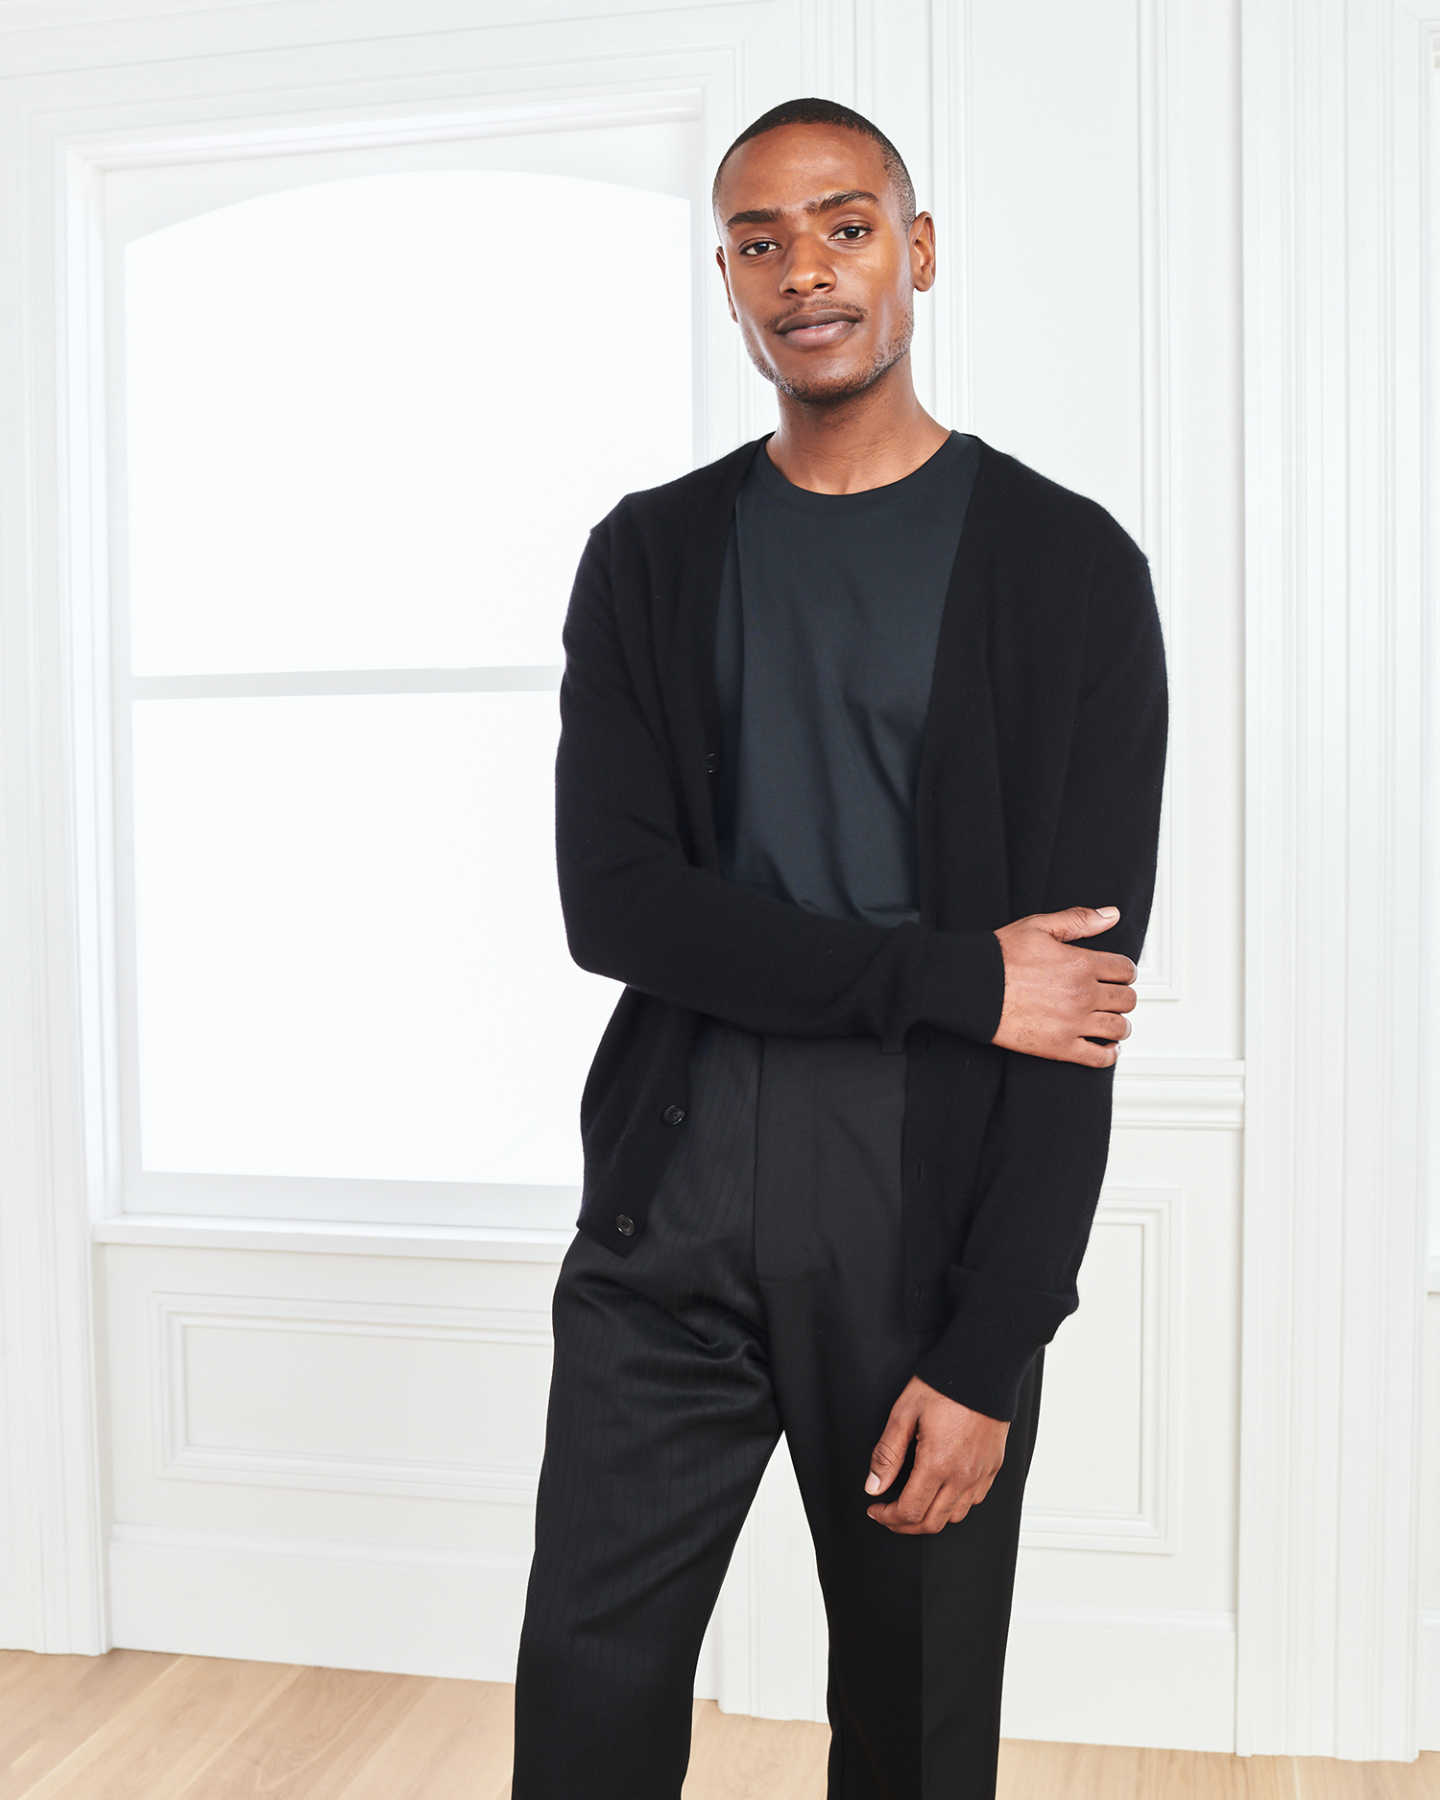 Men's cashmere cardigan sweater in black with arms crossed